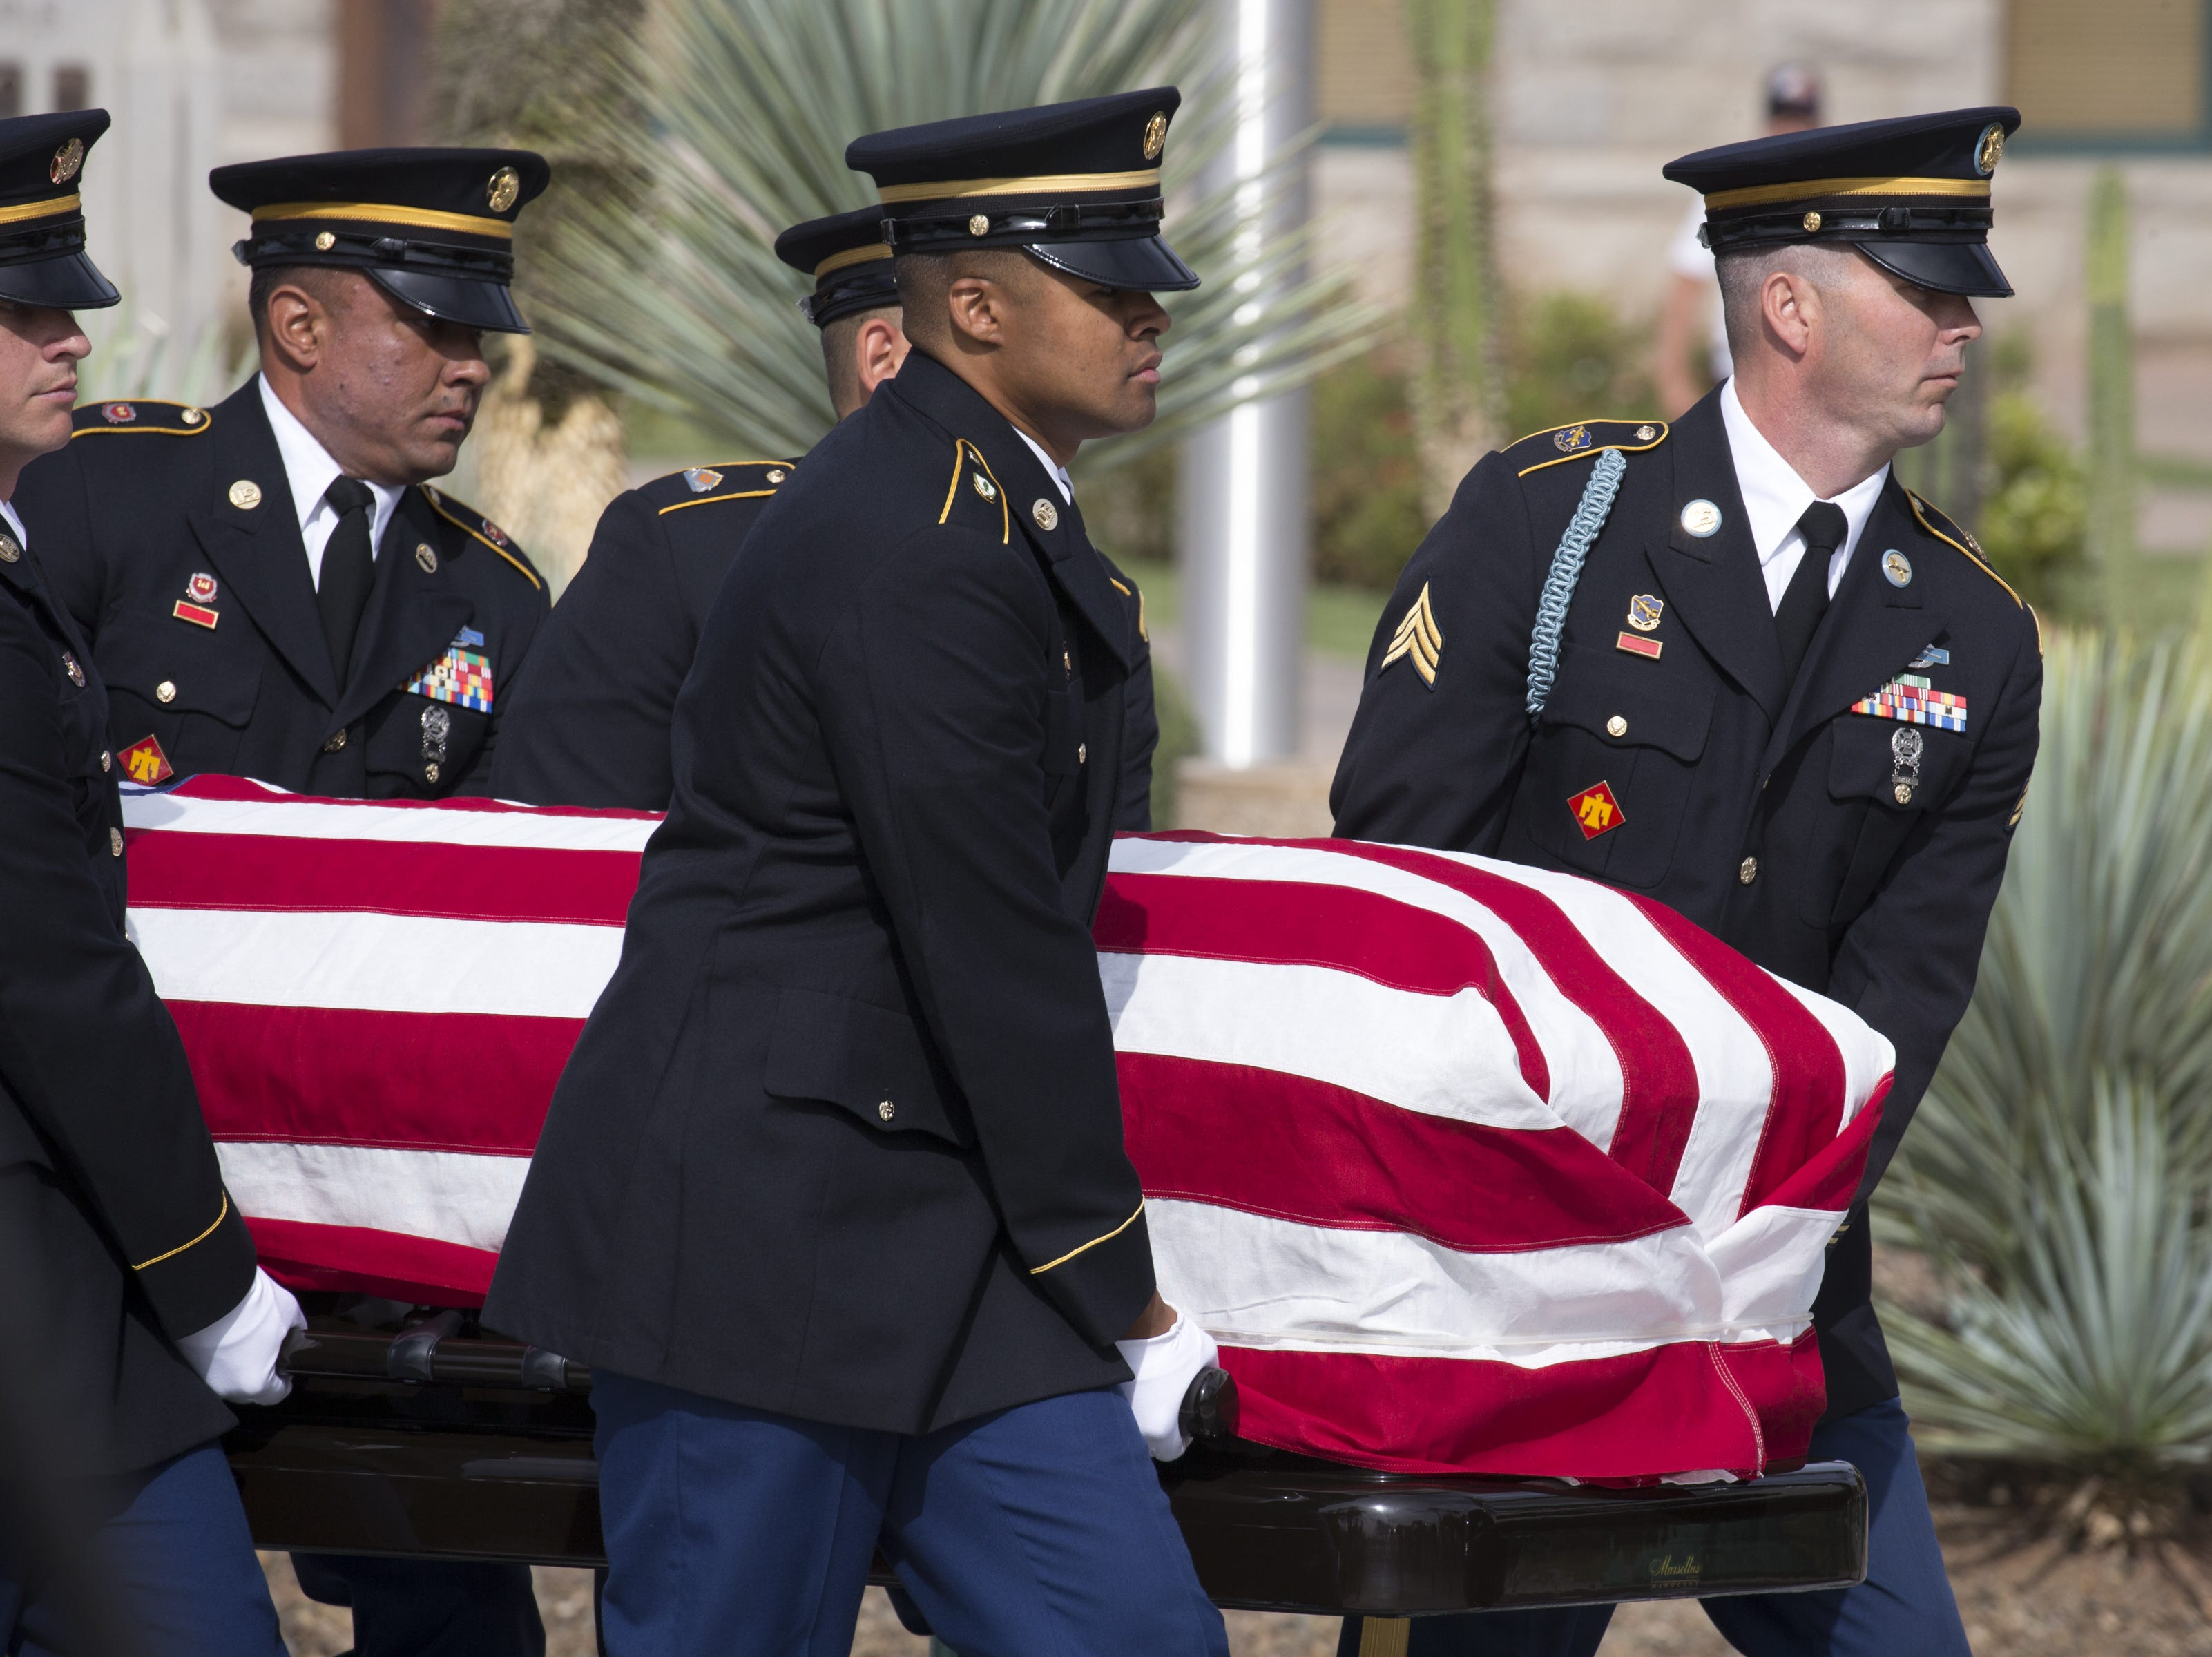 The casket carrying the body of John McCain leaves the Arizona State Capitol, Aug. 30, 2018, for the memorial service at North Phoenix Baptist Church, Phoenix, Arizona.